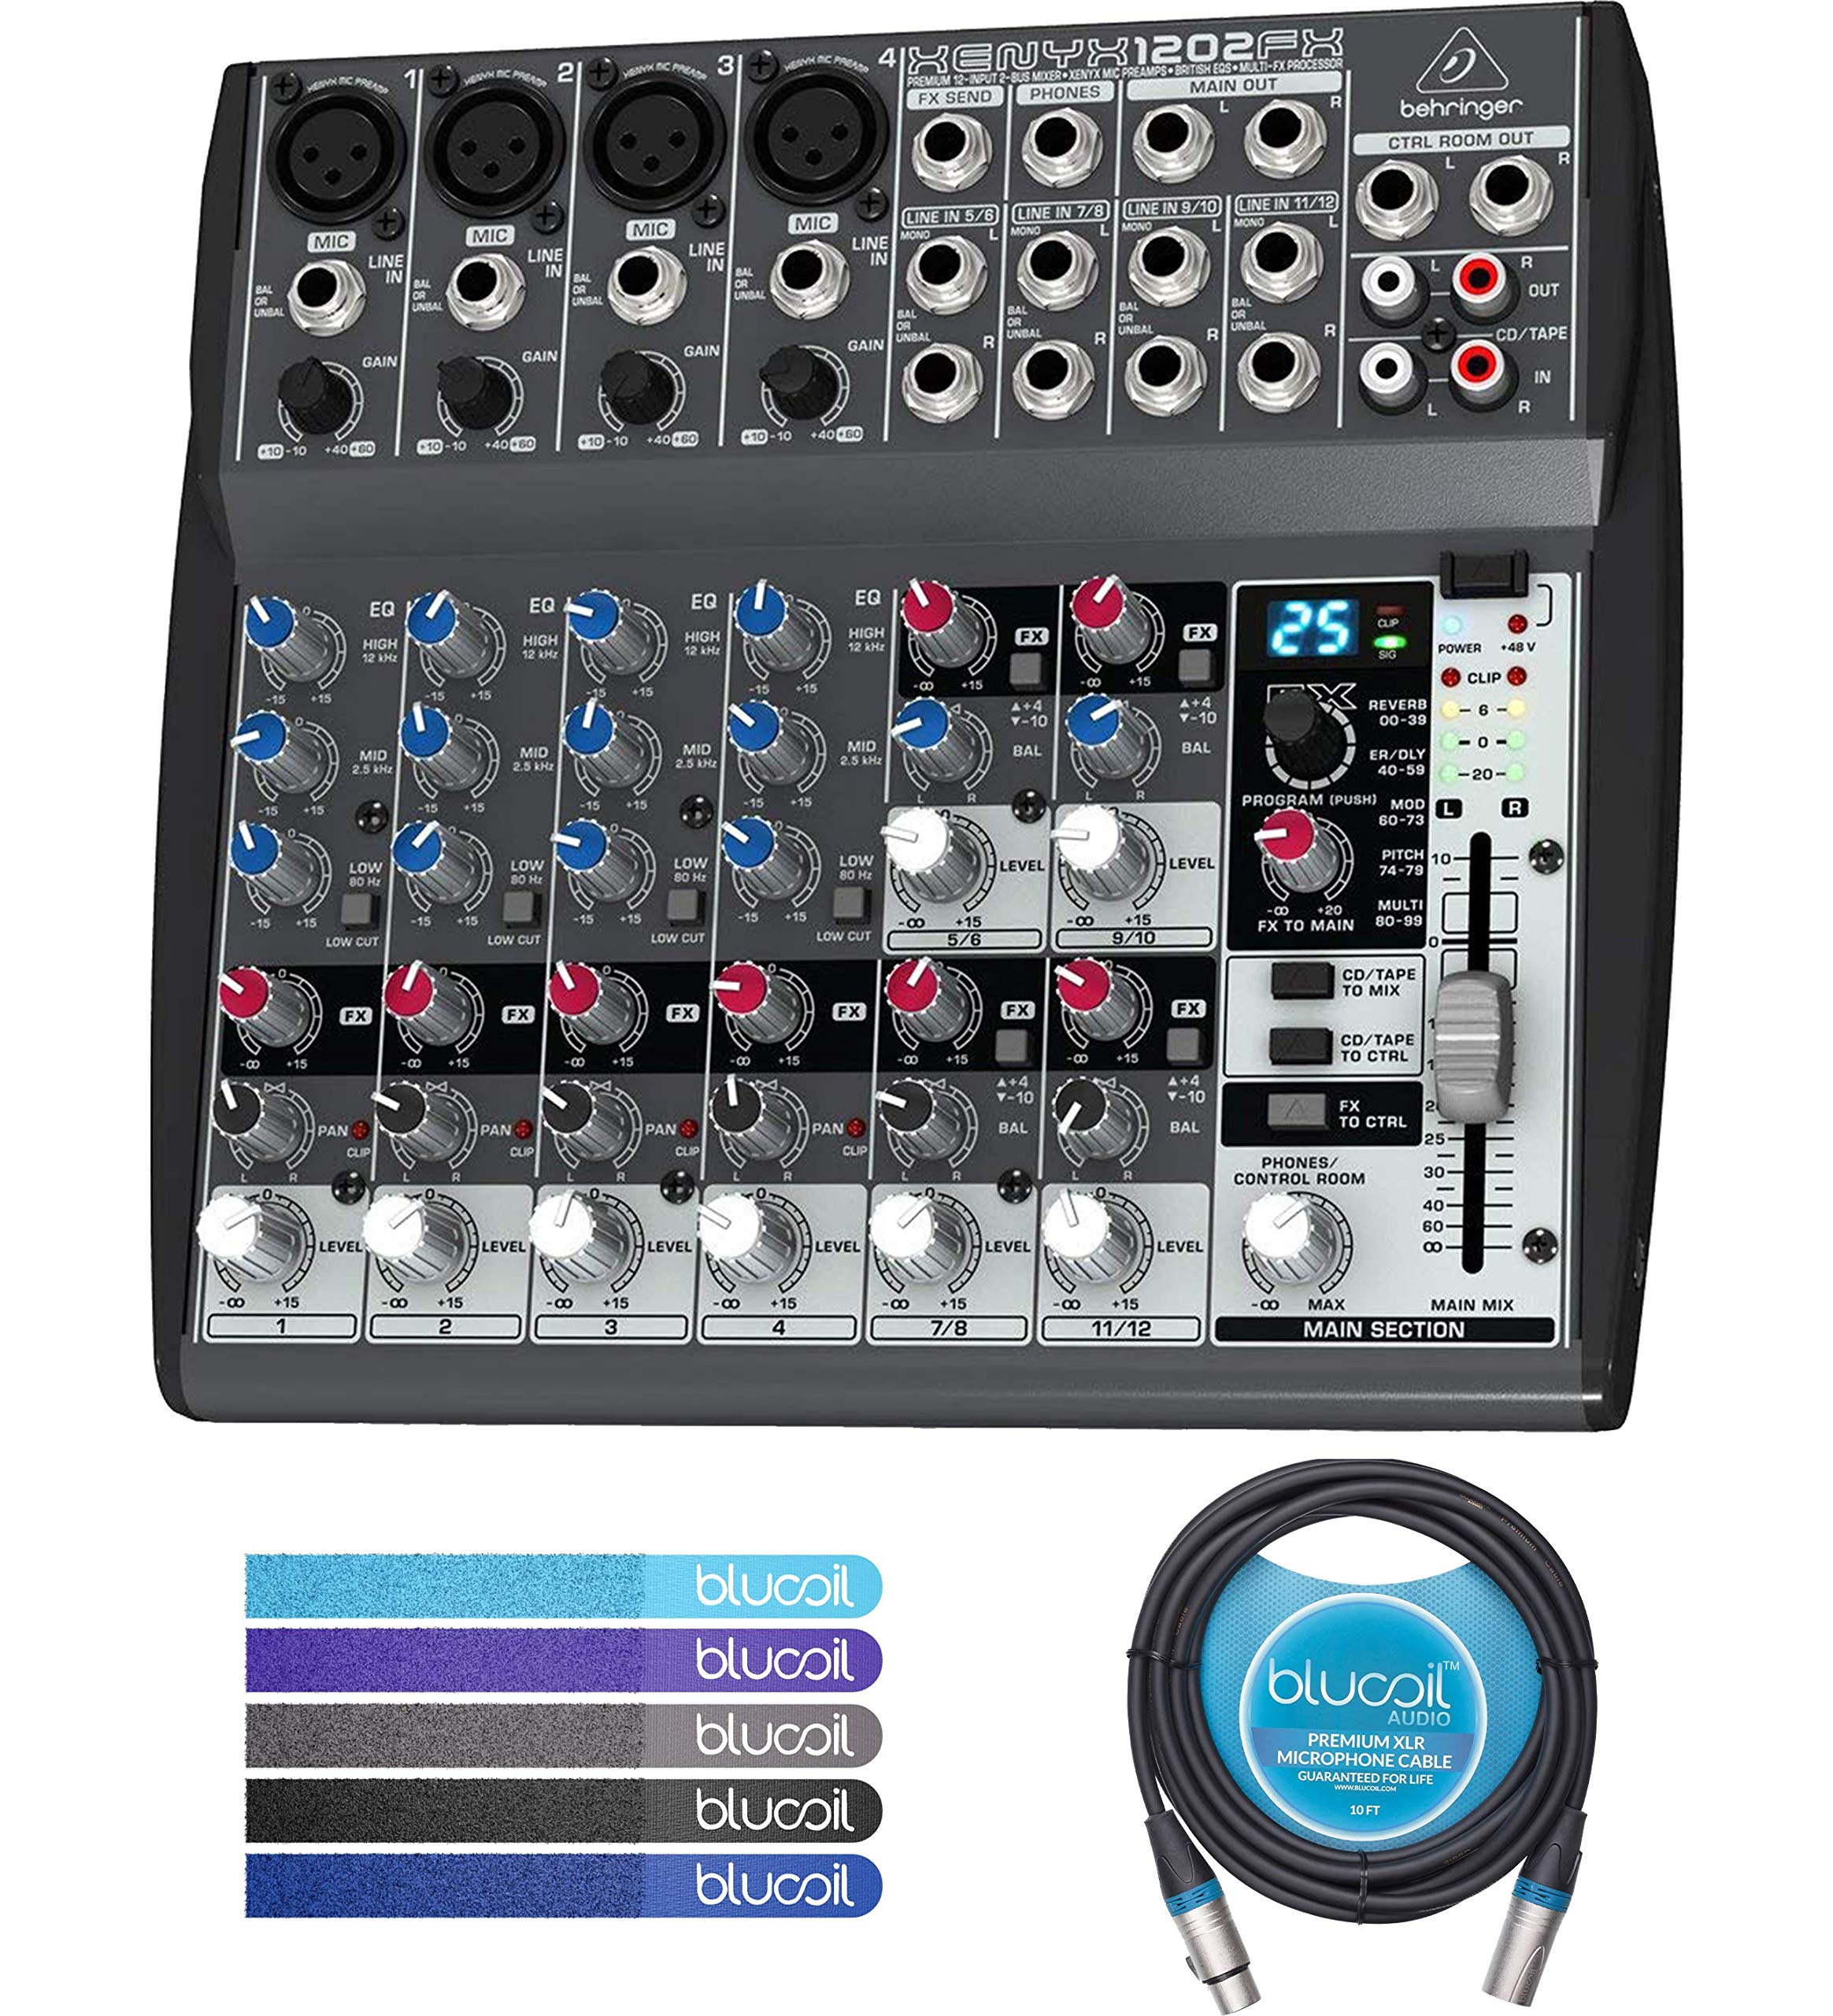 Behringer XENYX 1202FX 12-Input 2-Bus Analog Mixer Bundle with Blucoil Audio 10' Balanced XLR Cable and 5 Pack of Reusable Cable Ties